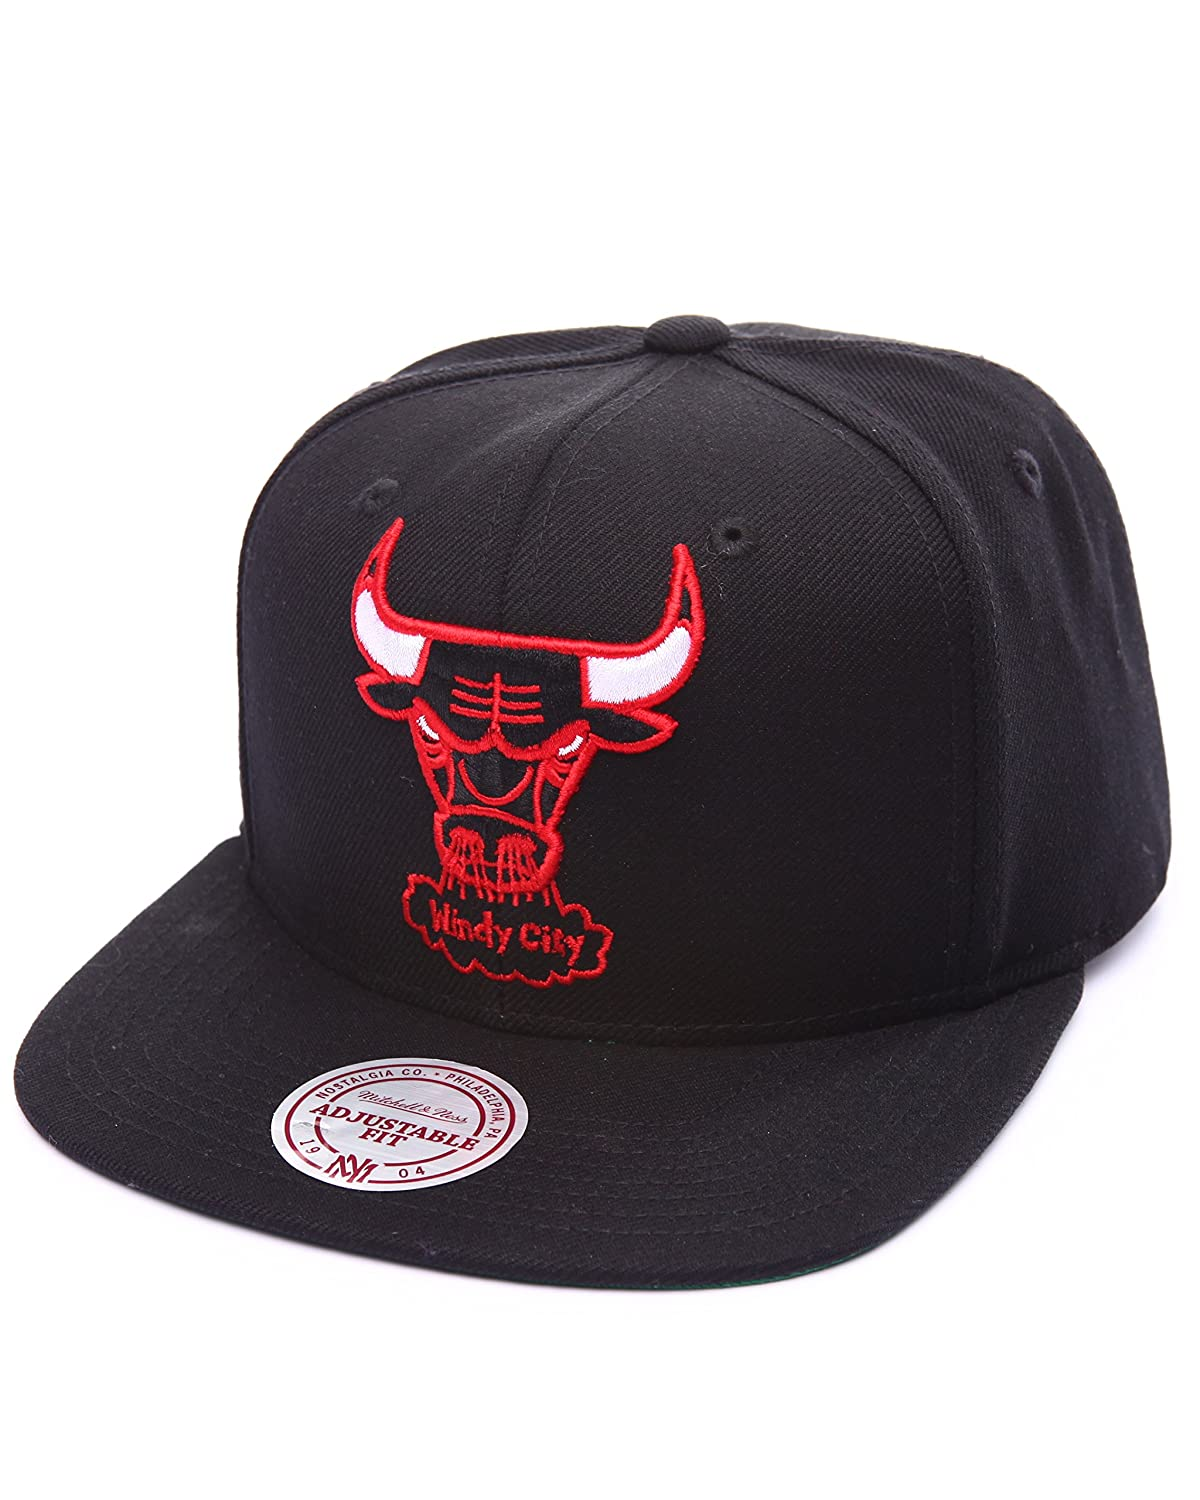 9e6e4ef9b56 Top1  Chicago Bulls NBA Mitchell   Ness Team Logo Solid Wool Adjustable  Snapback Hat